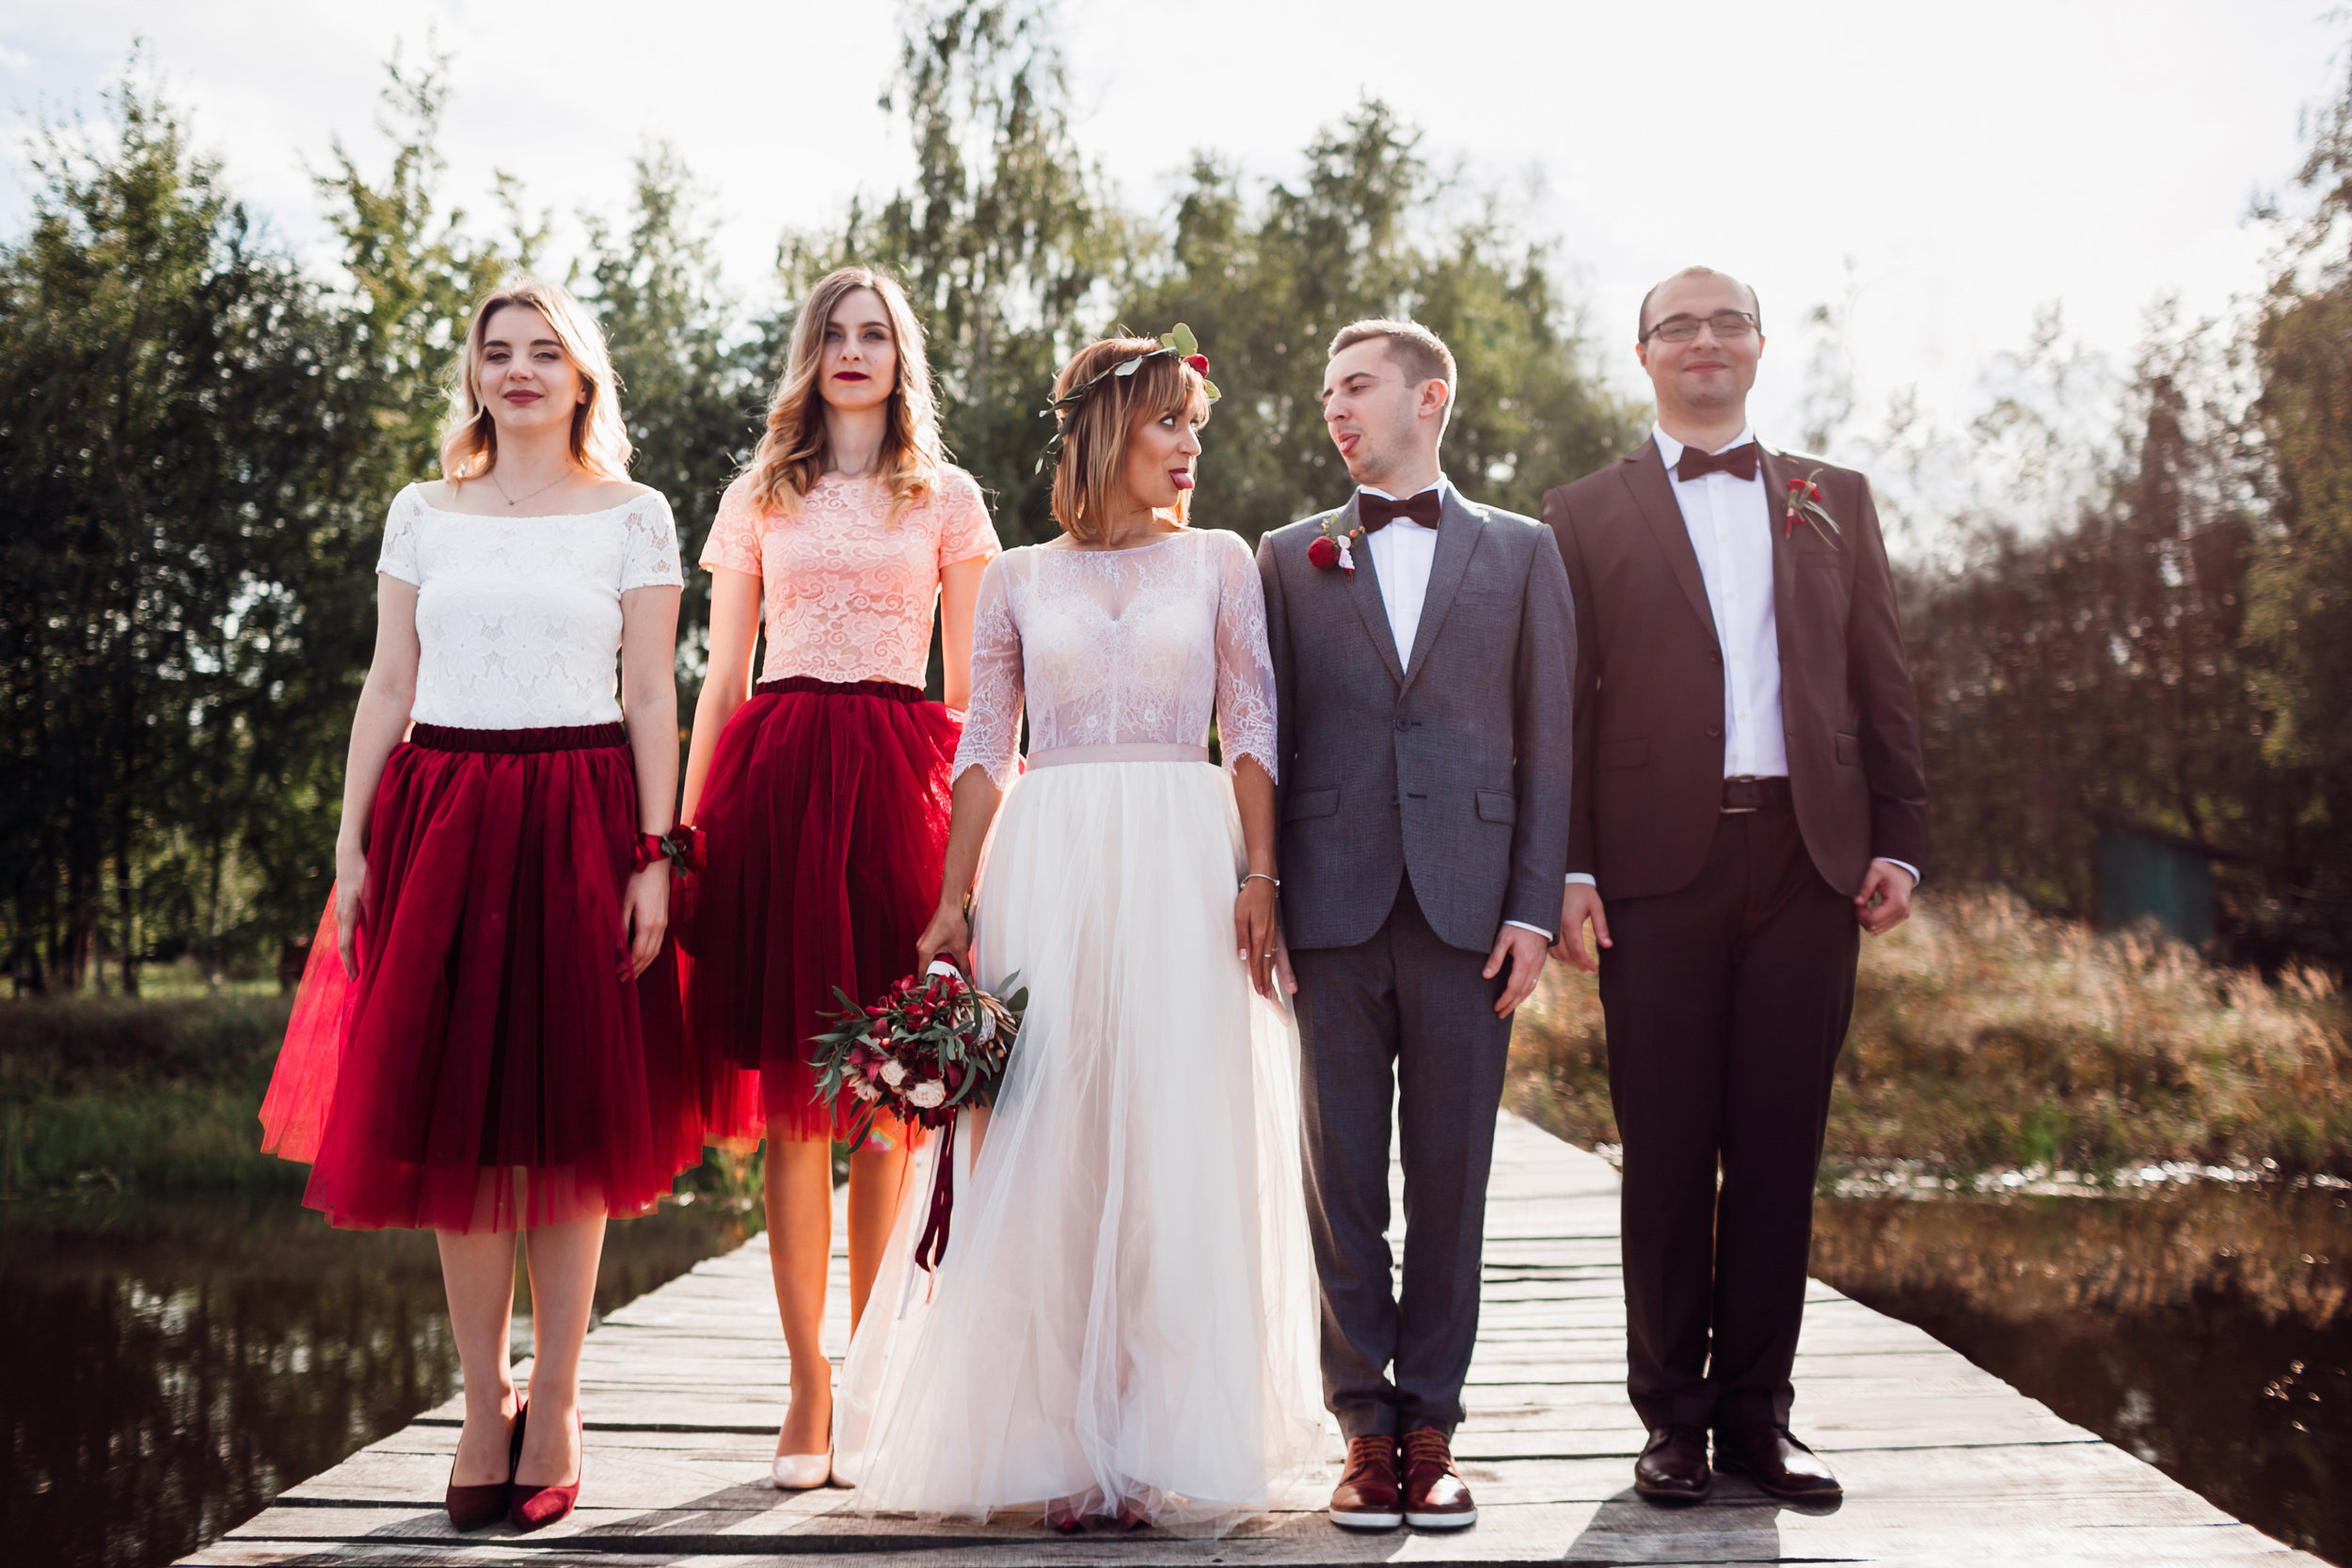 Outdoor wedding friends group photo retouching